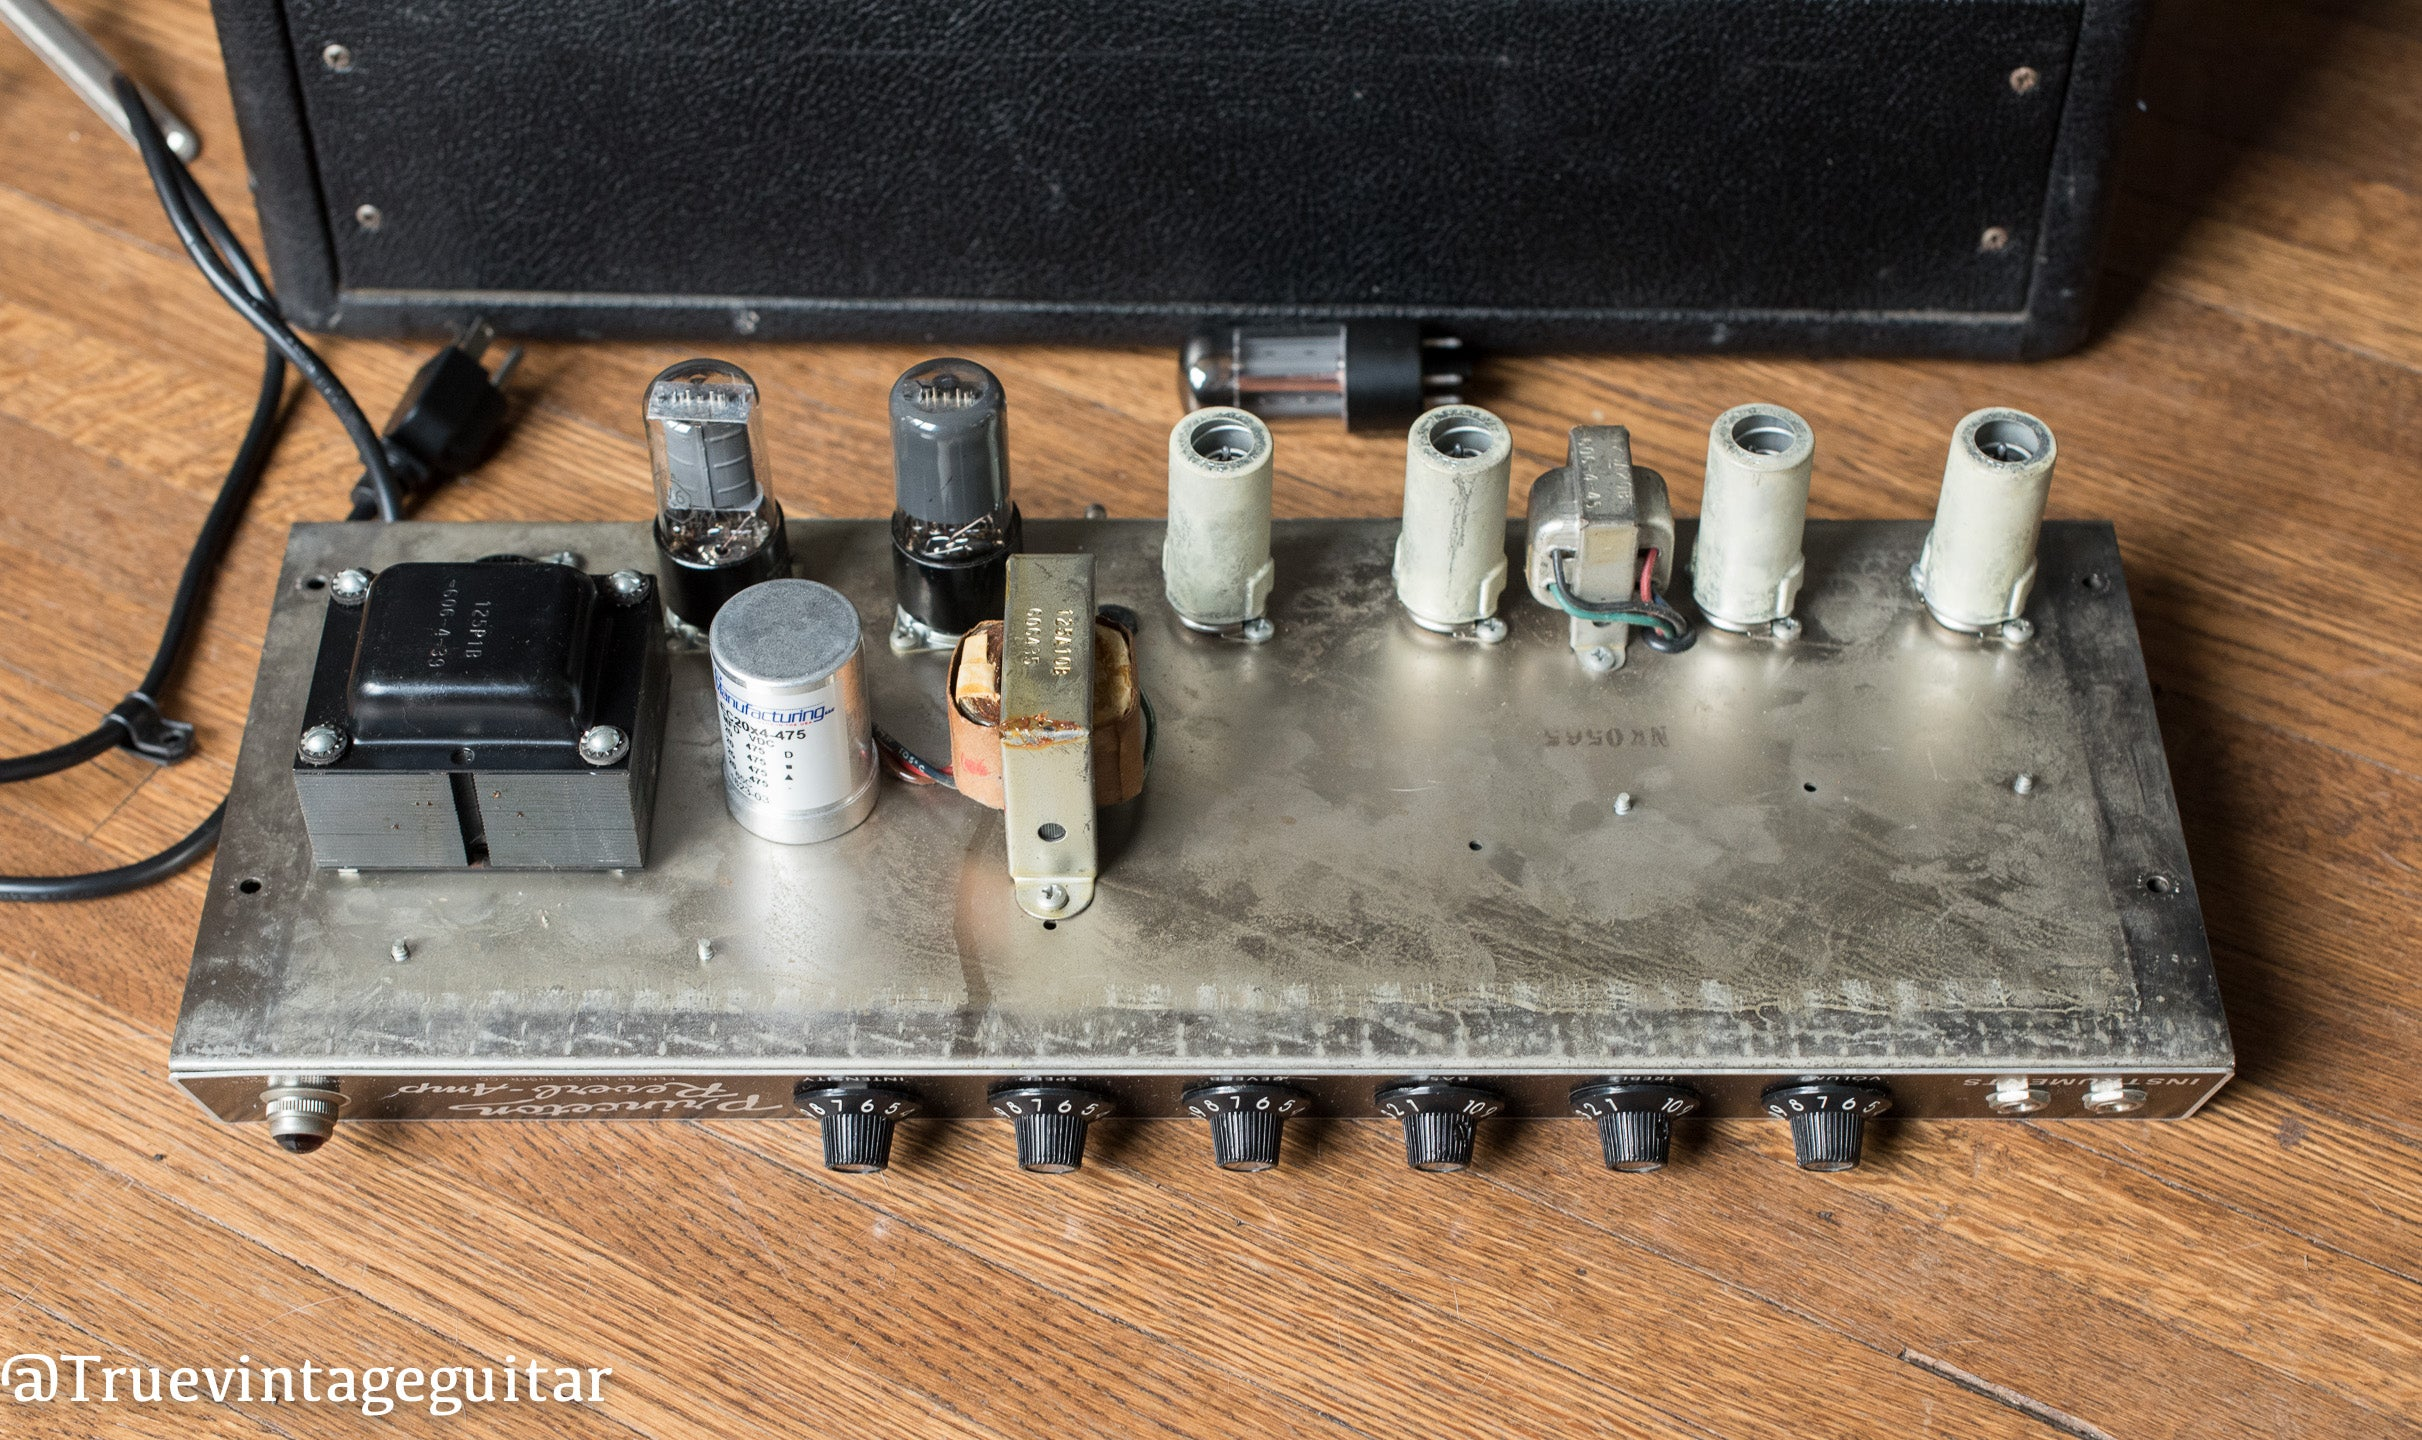 Original power transformer, output transformer, Vintage 1965 Fender Princeton Reverb Amp Amplifier